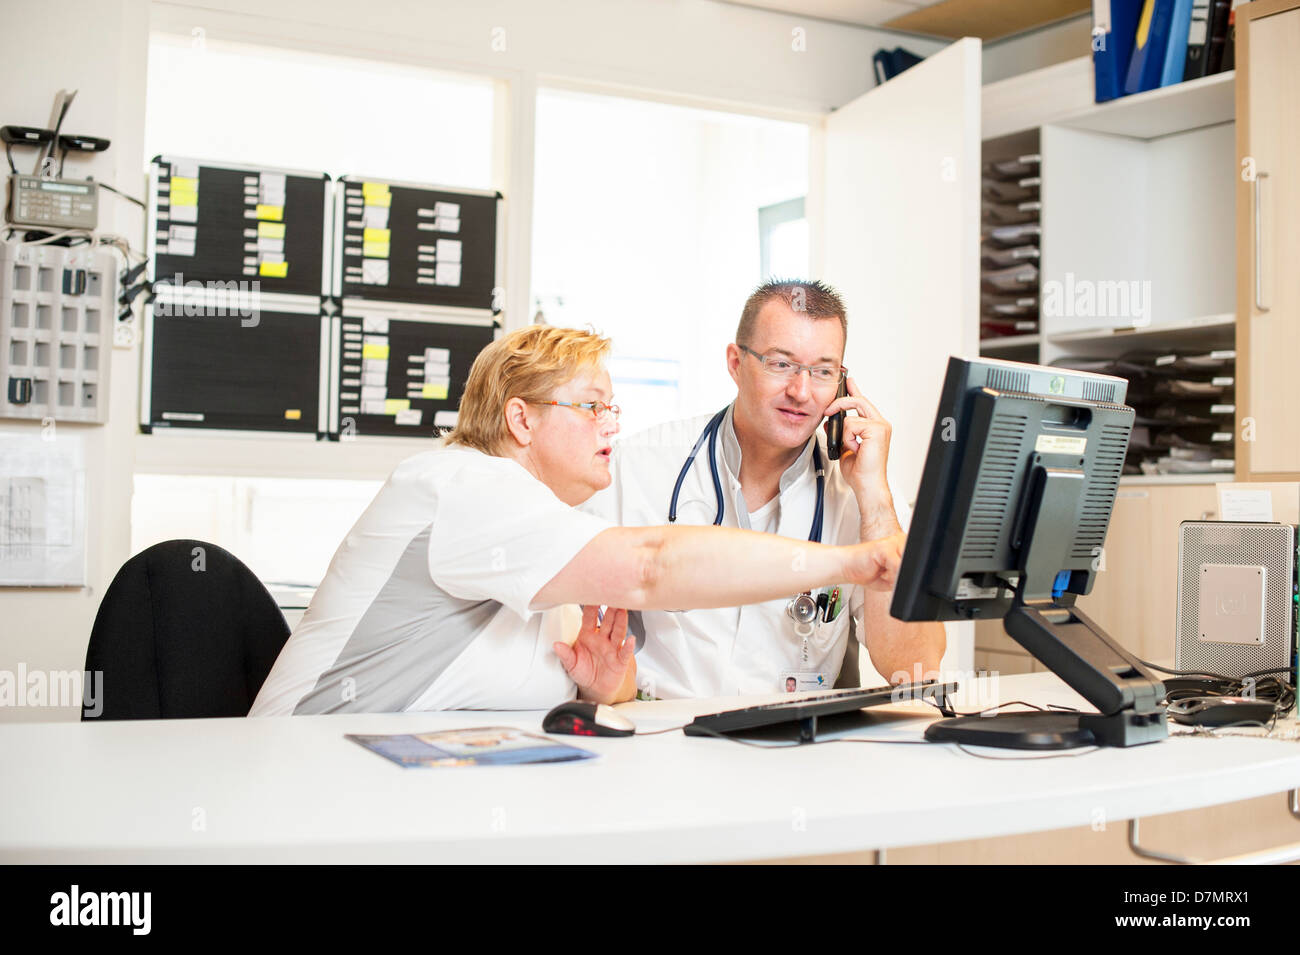 Hospital nurses - Stock Image